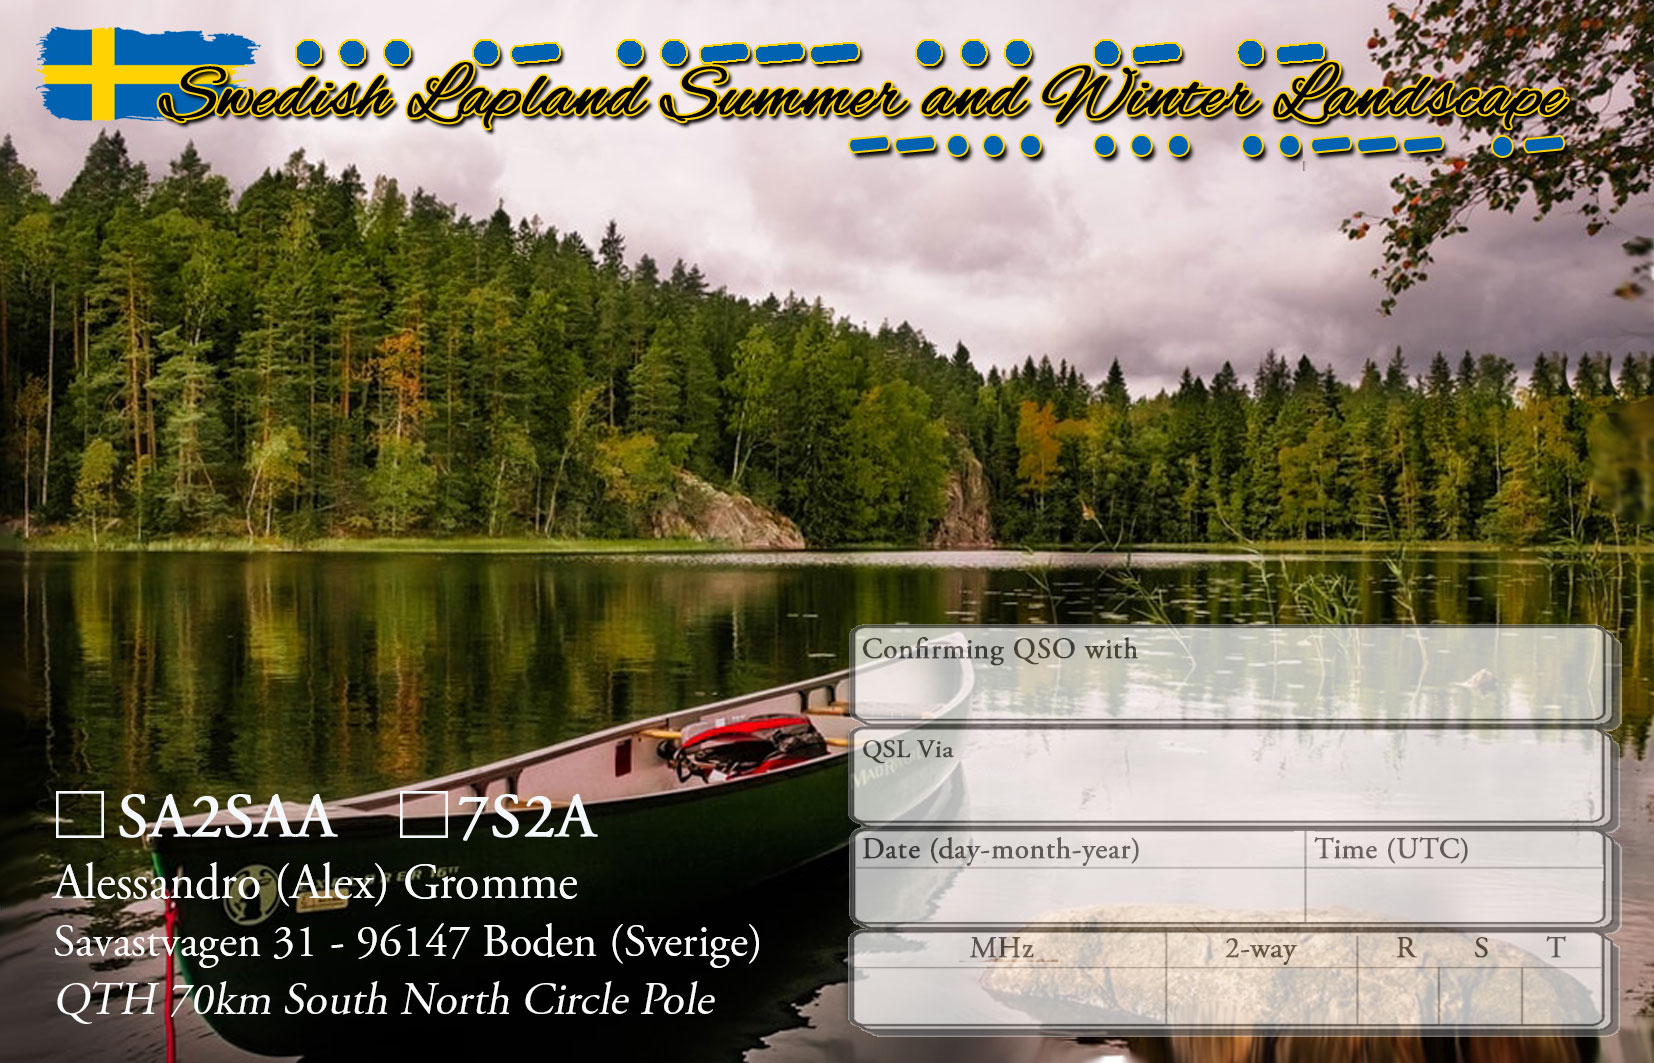 SA2SAA / 7S2A - Final QSL design (rear)